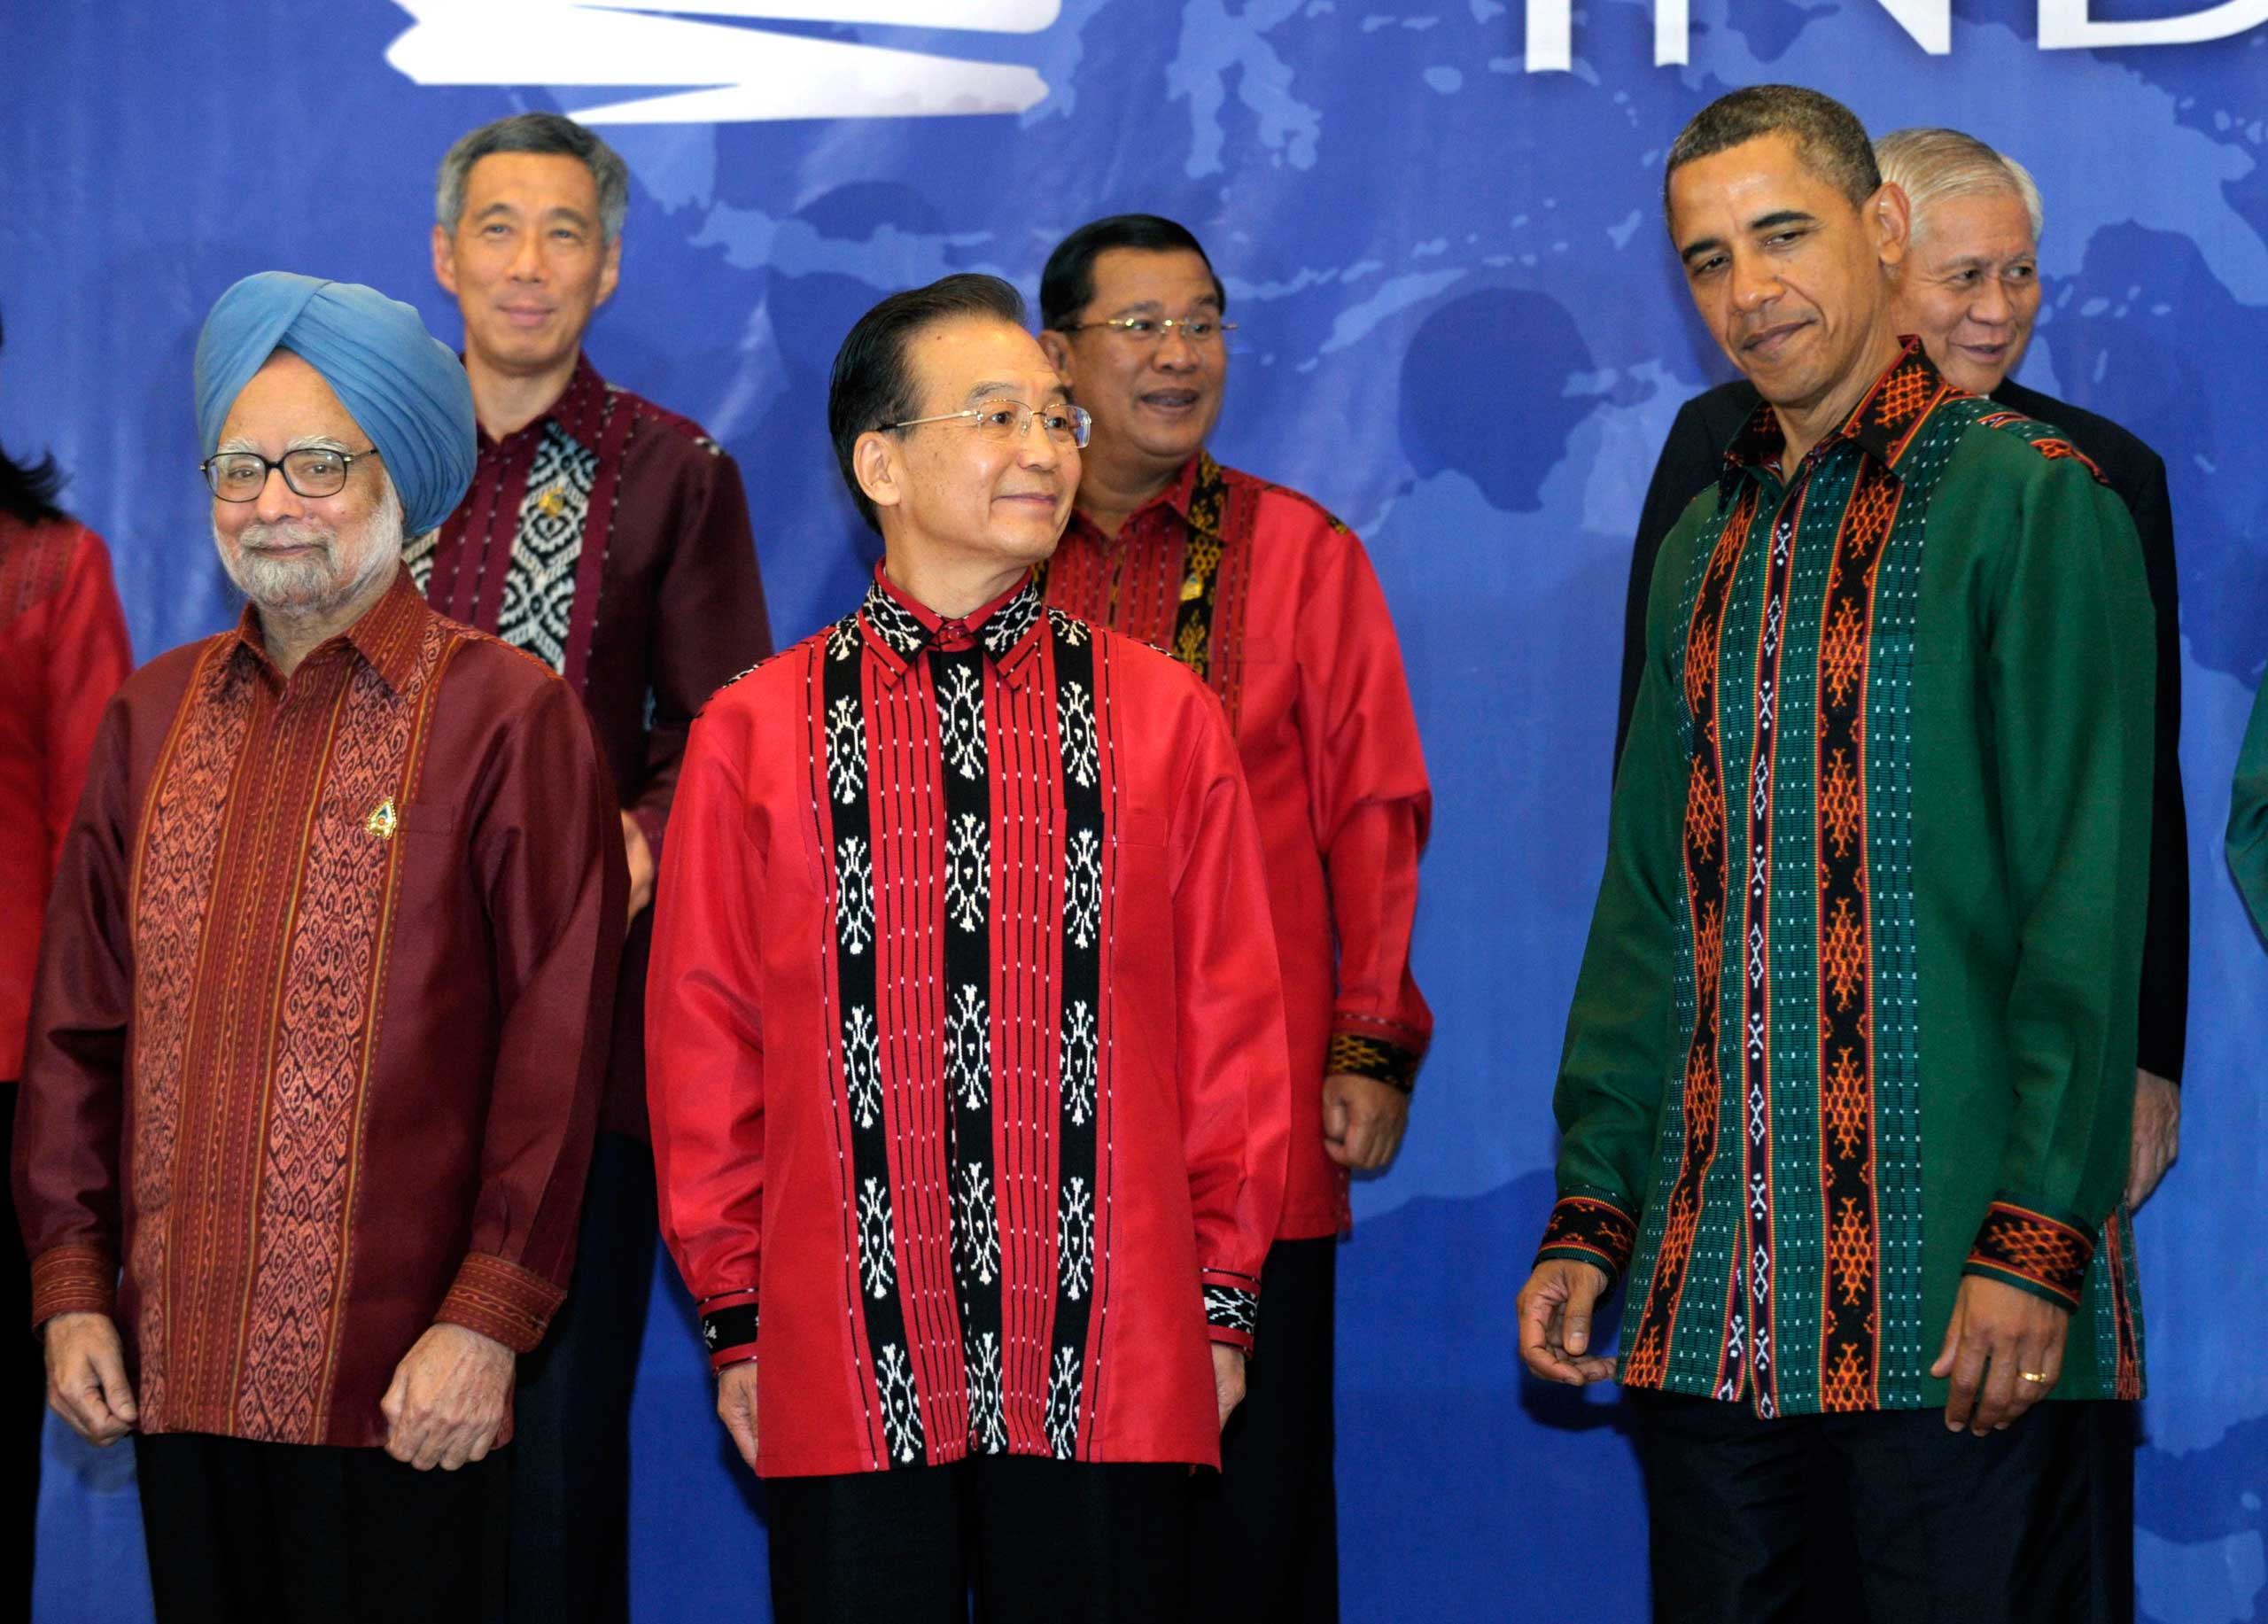 President Barack Obama stands with China's Premier Wen Jiabao, center, as they wait to take a photo at the East Asia Summit Gala dinner in Nusa Dua, on the island of Bali in Indonesia in 2011.